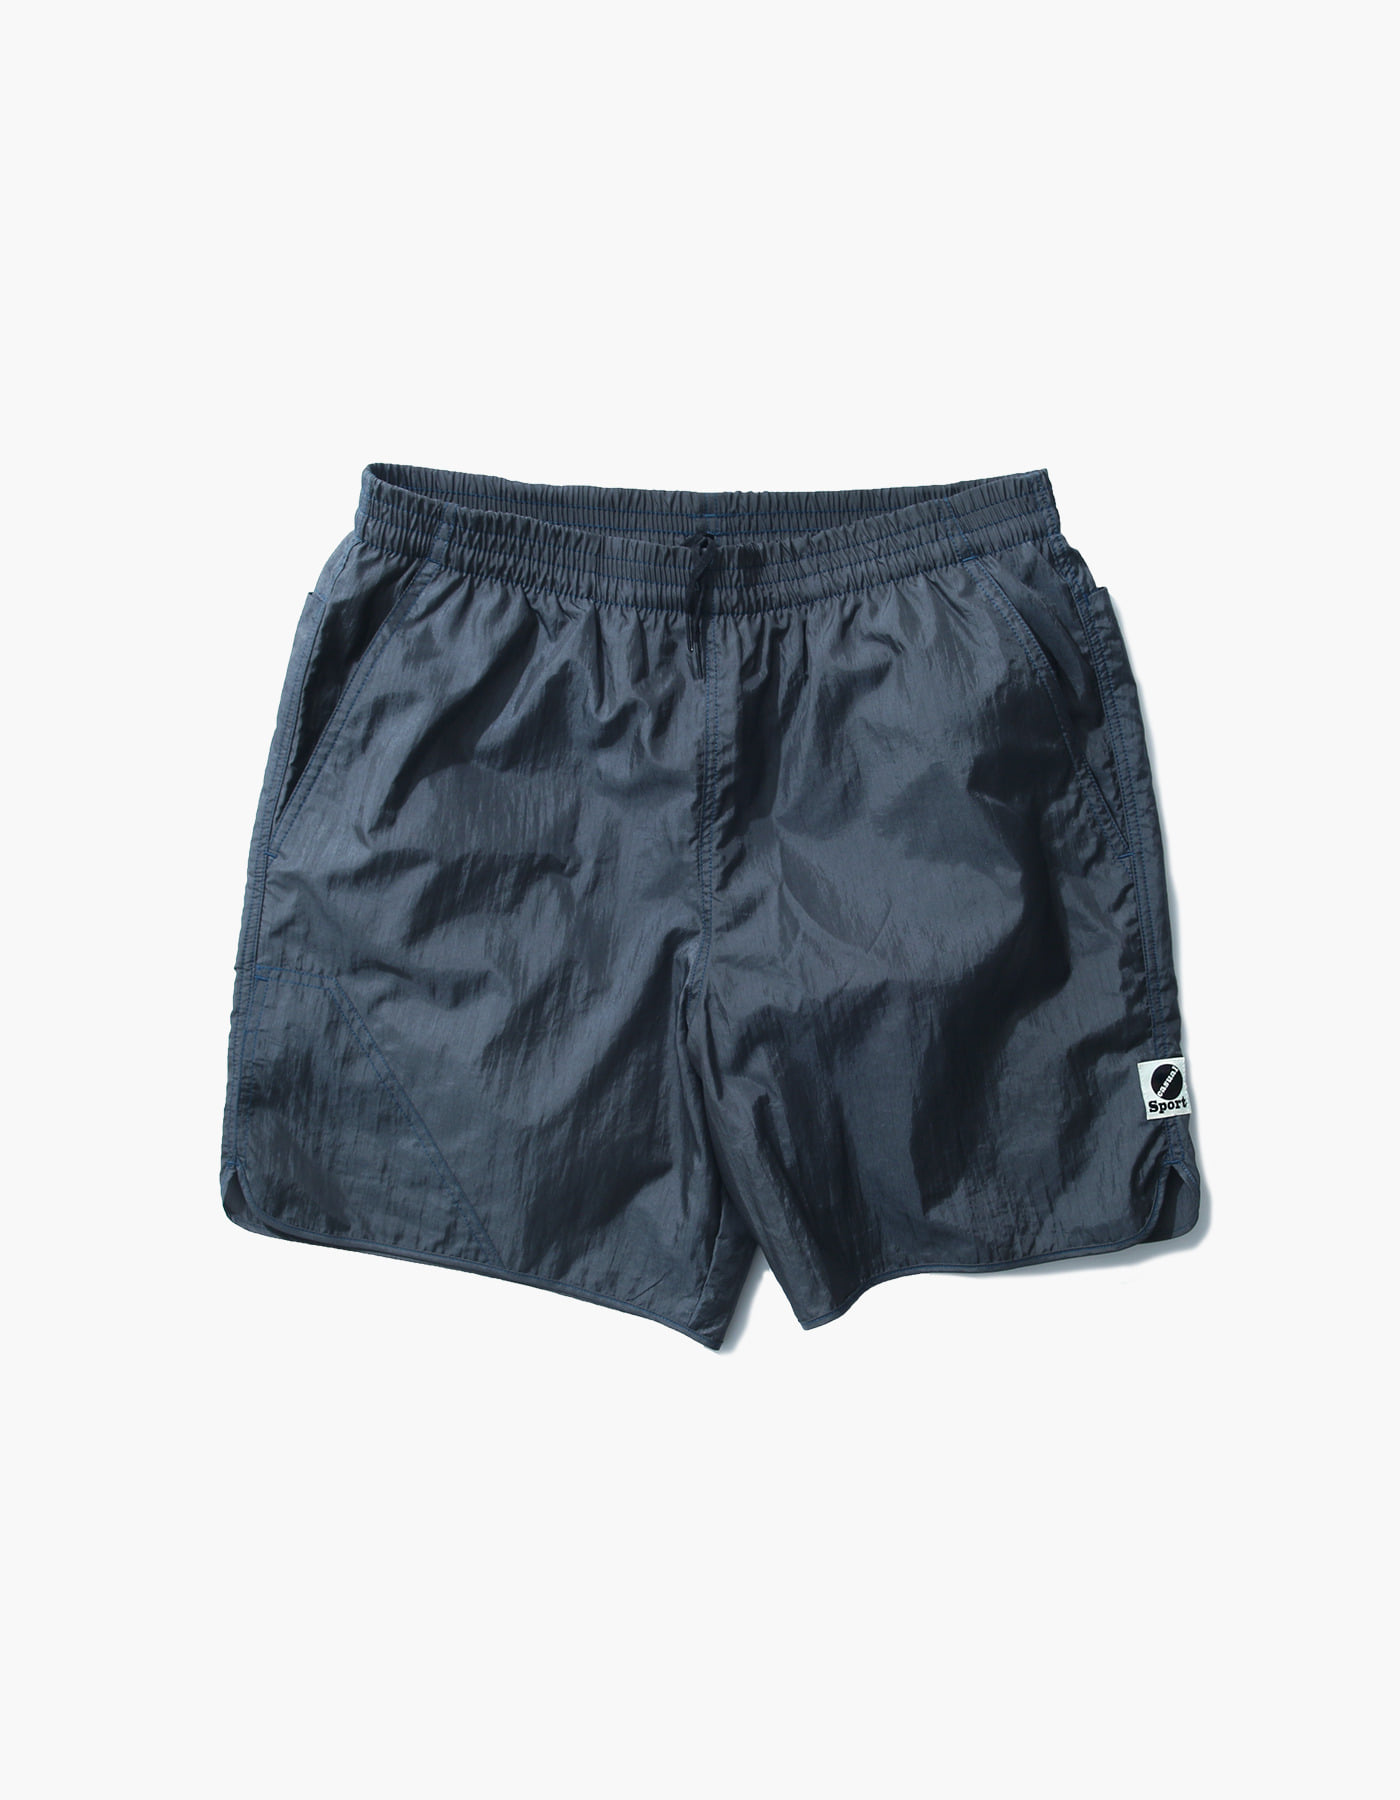 NYLON DIAMOND WASHER SHORTS II / FOLIAGE GREEN